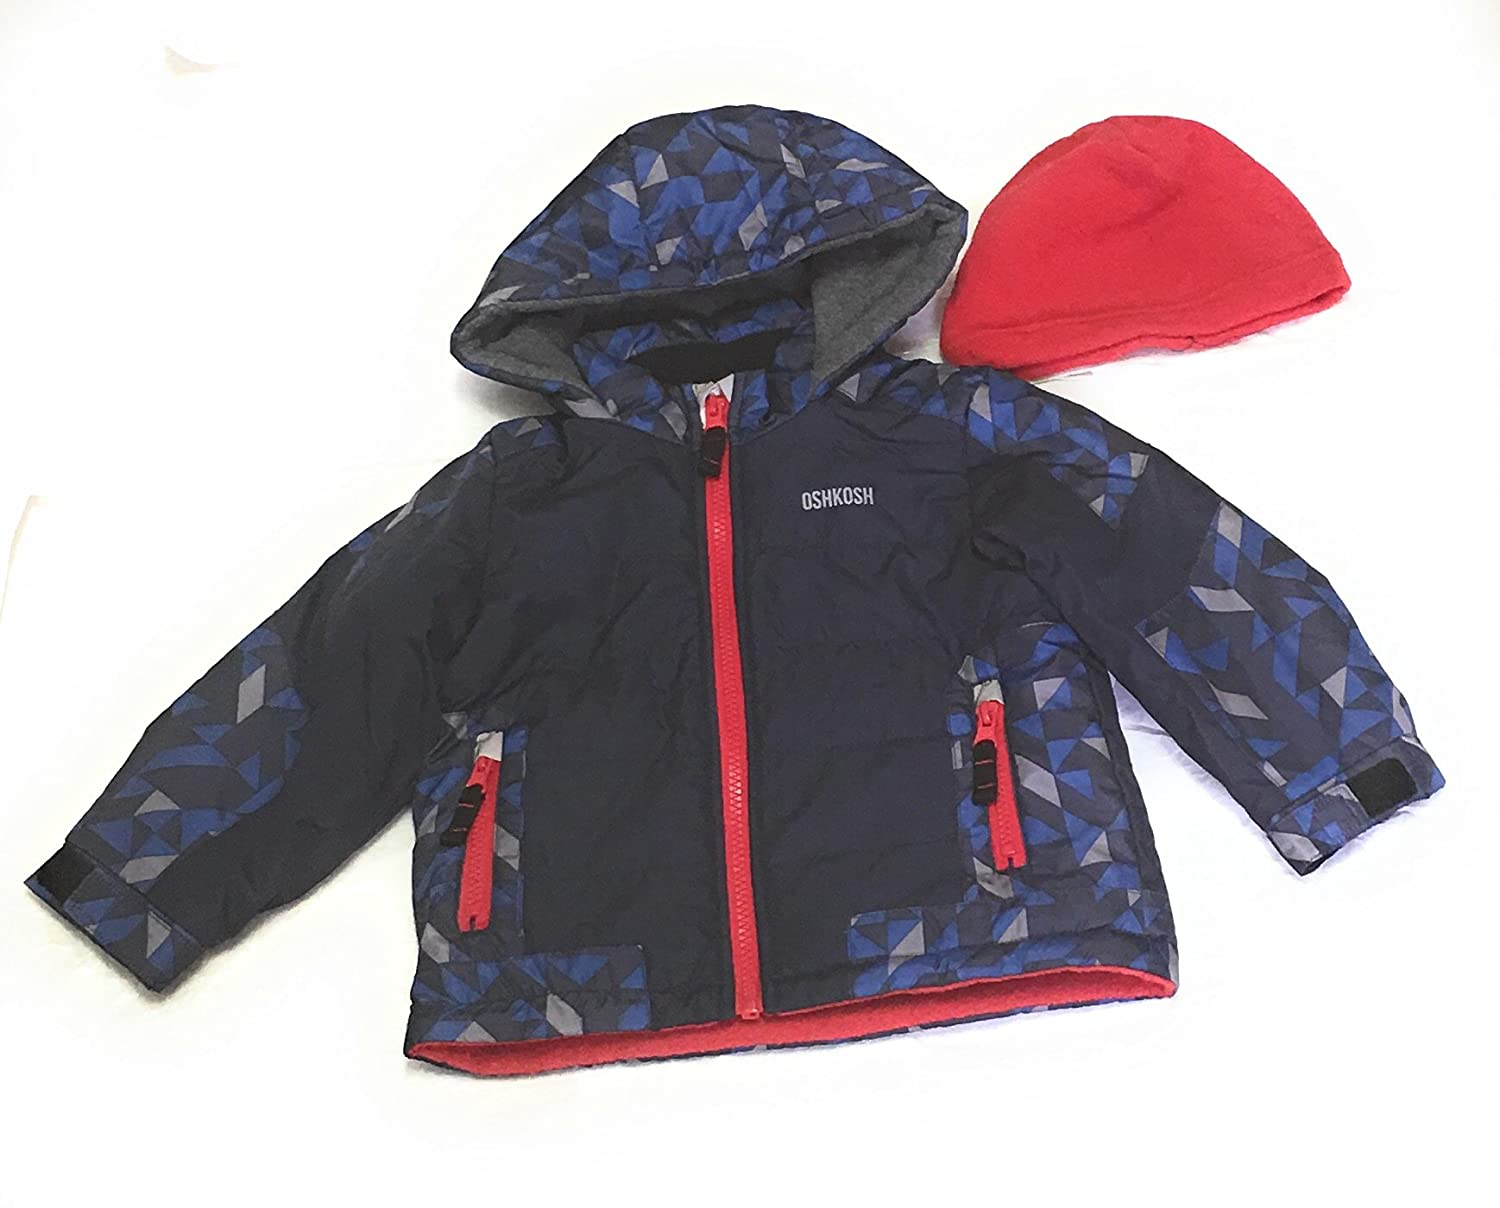 OshKosh BGosh Boys Jacket with Extra Fleece Hat Size 2T Navy//Red